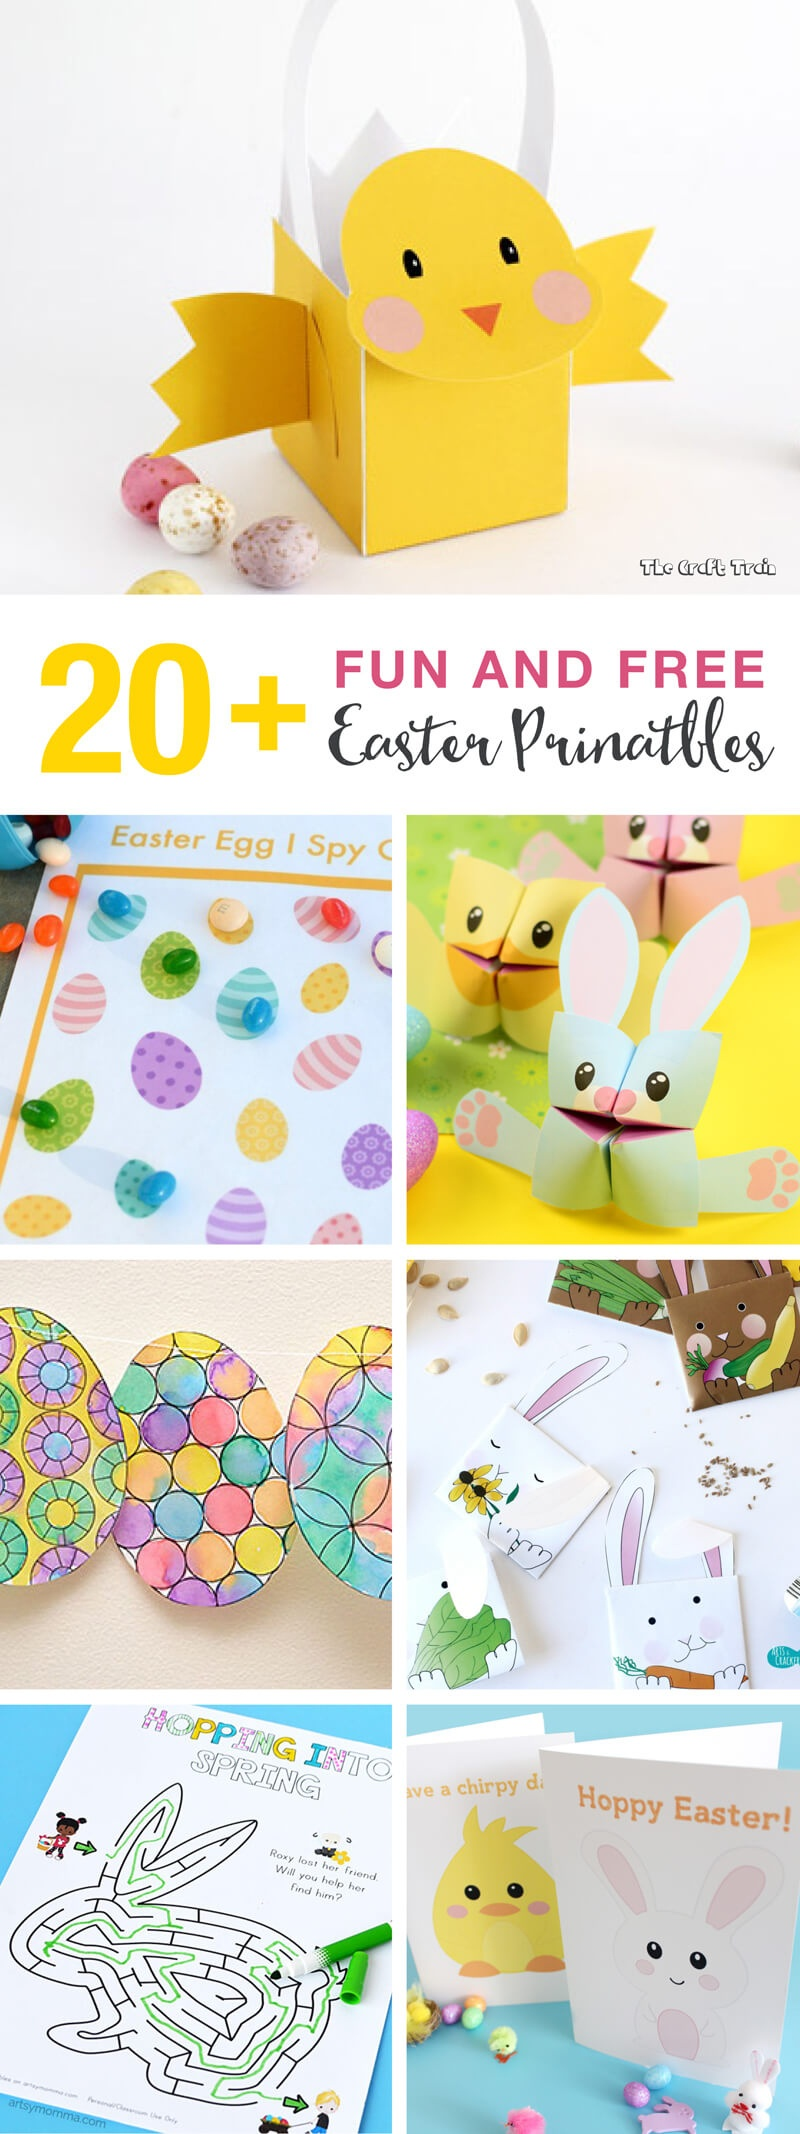 20+ Fun And Free Easter Printables For Kids | The Craft Train - Free Printable Easter Bunting